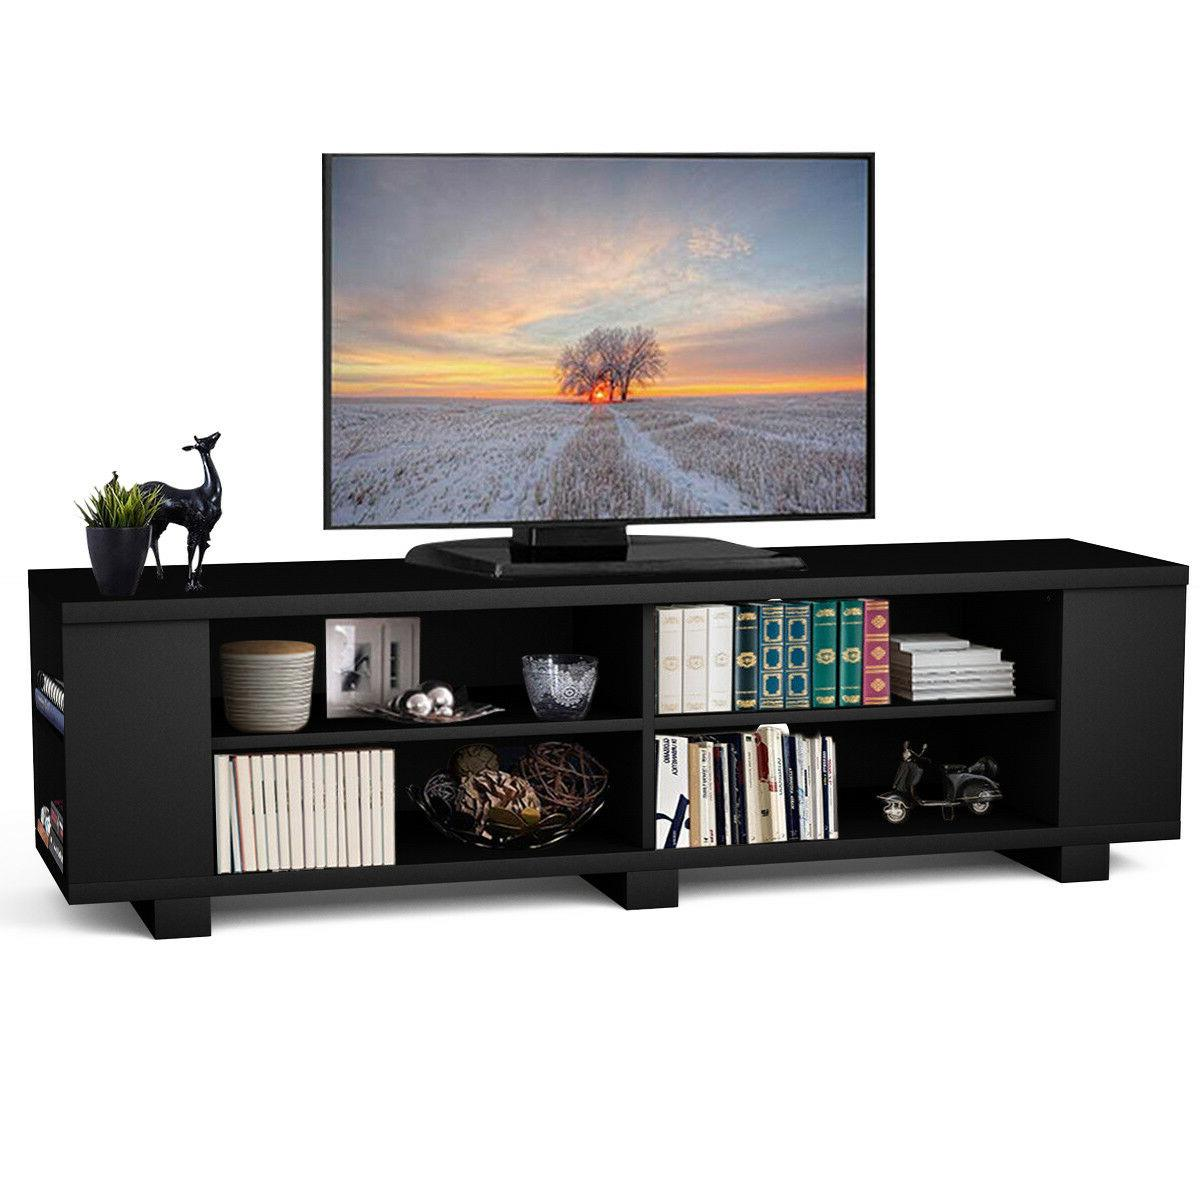 59 wood tv stand console storage entertainment